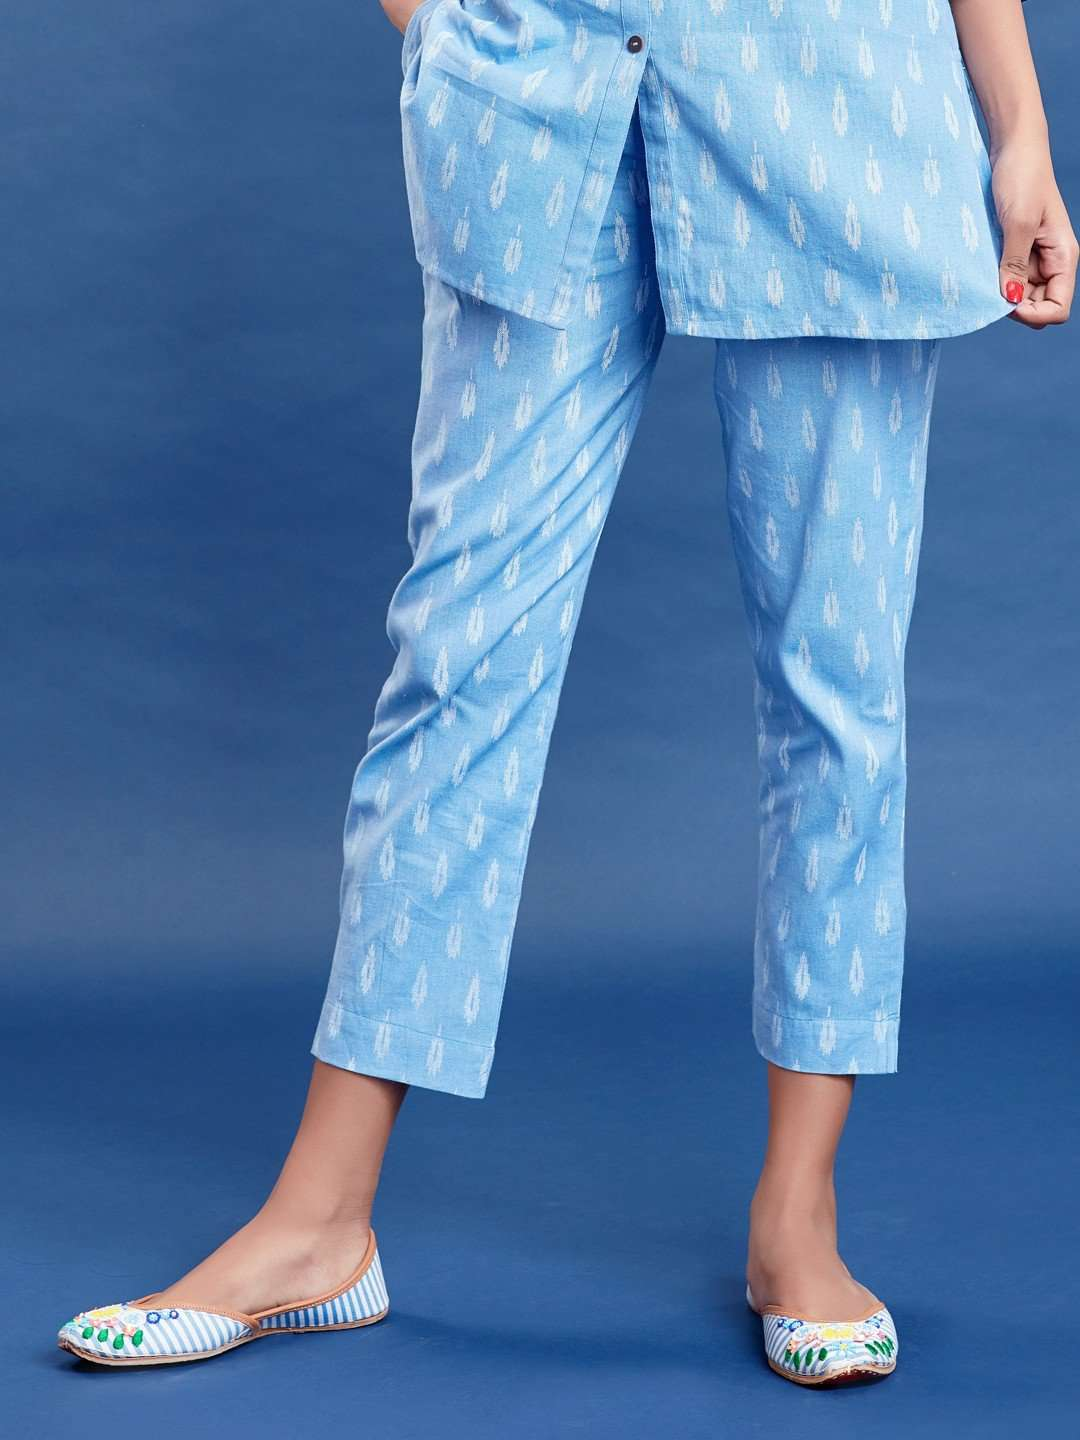 Blue Ikkat Printed Cotton Trouser